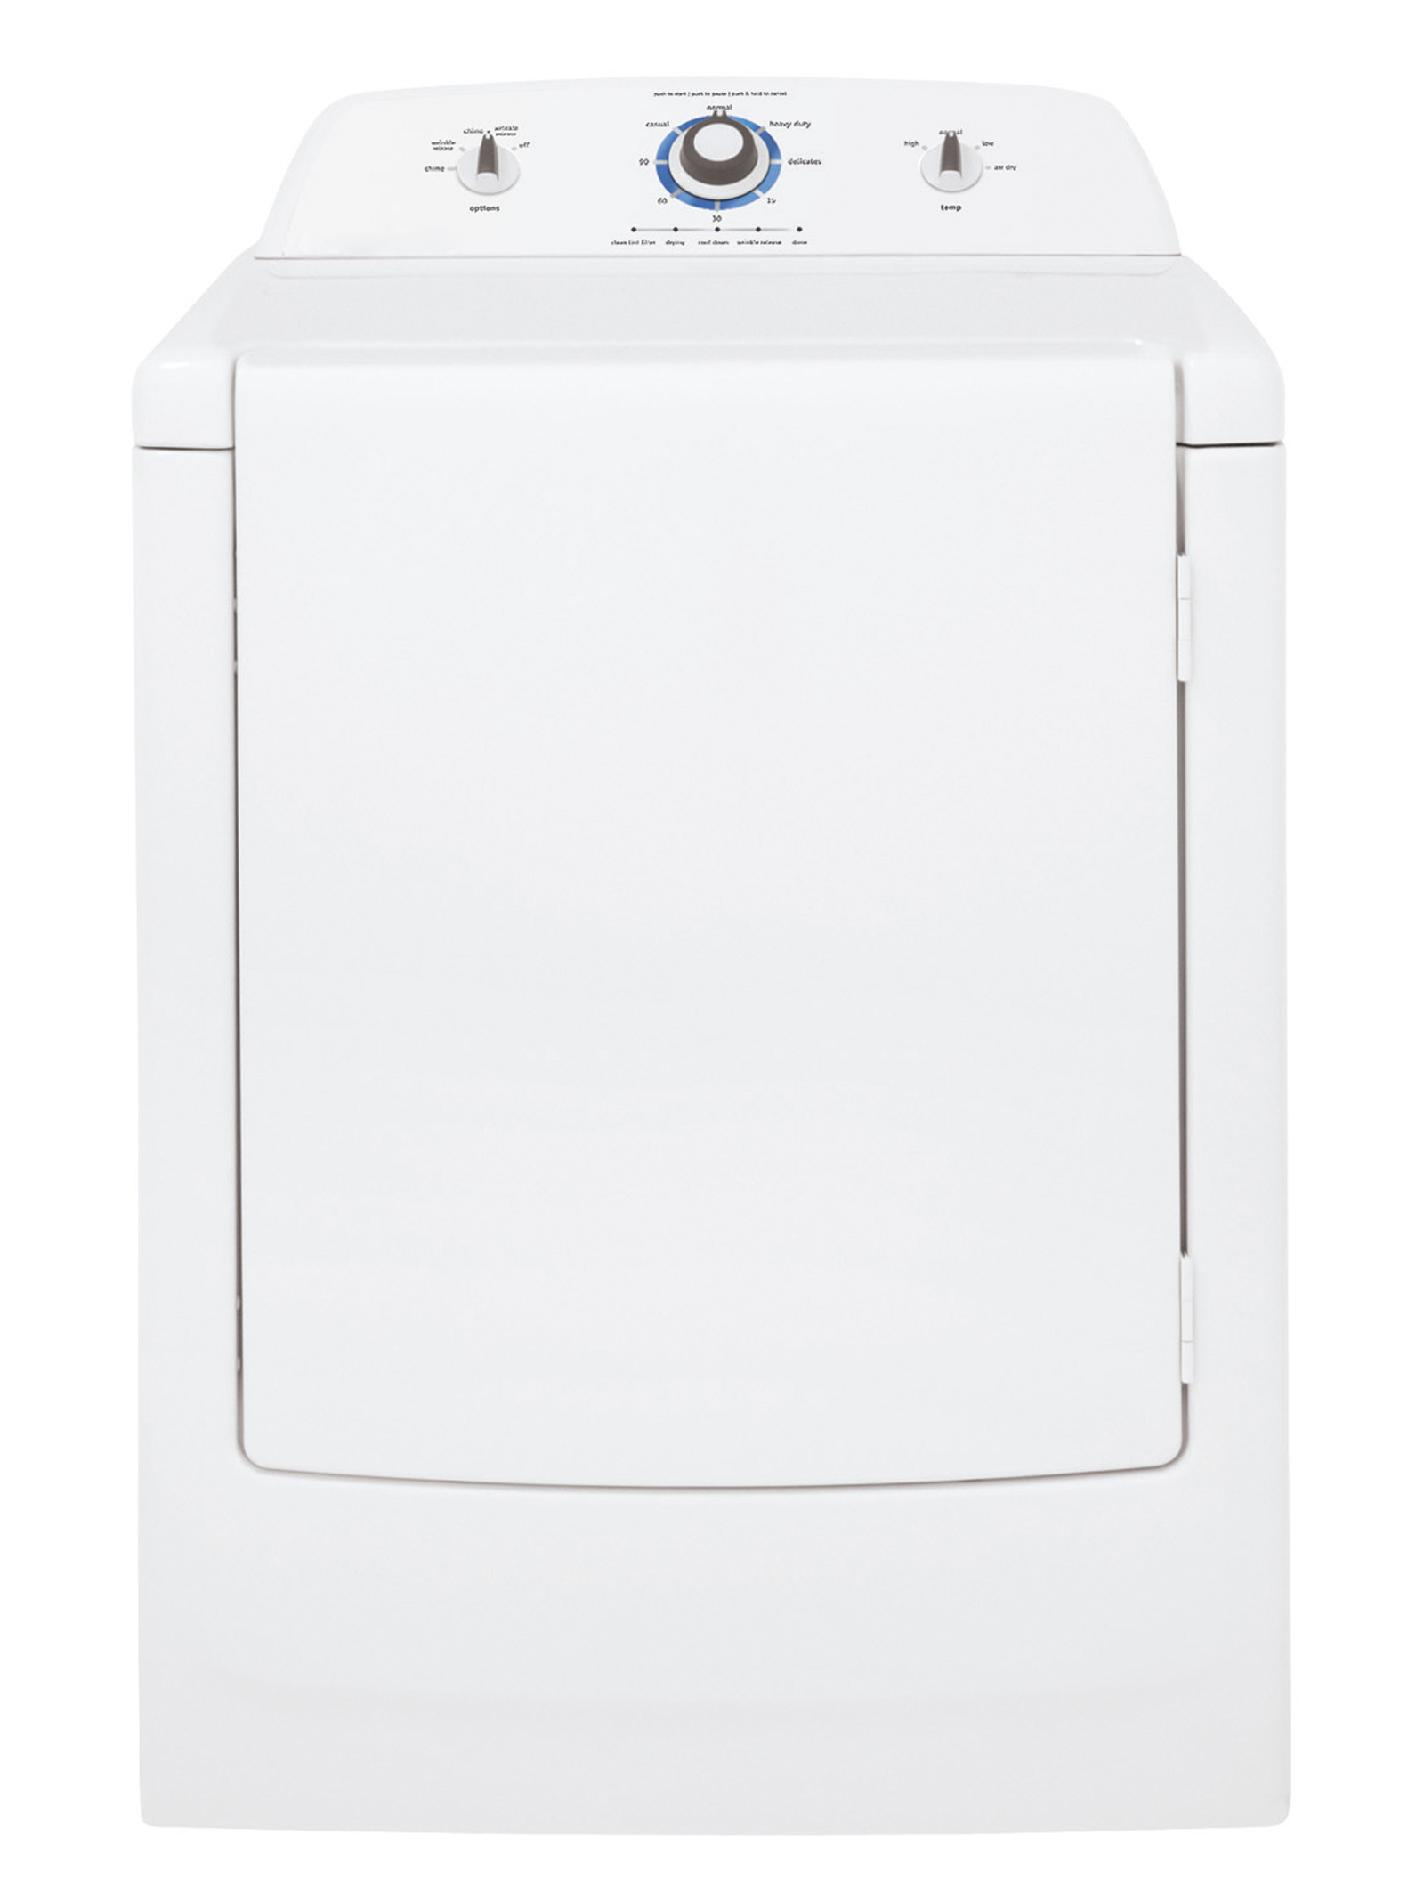 Frigidaire 7.0 cu. ft. Gas Dryer w/ Wrinkle Release - White